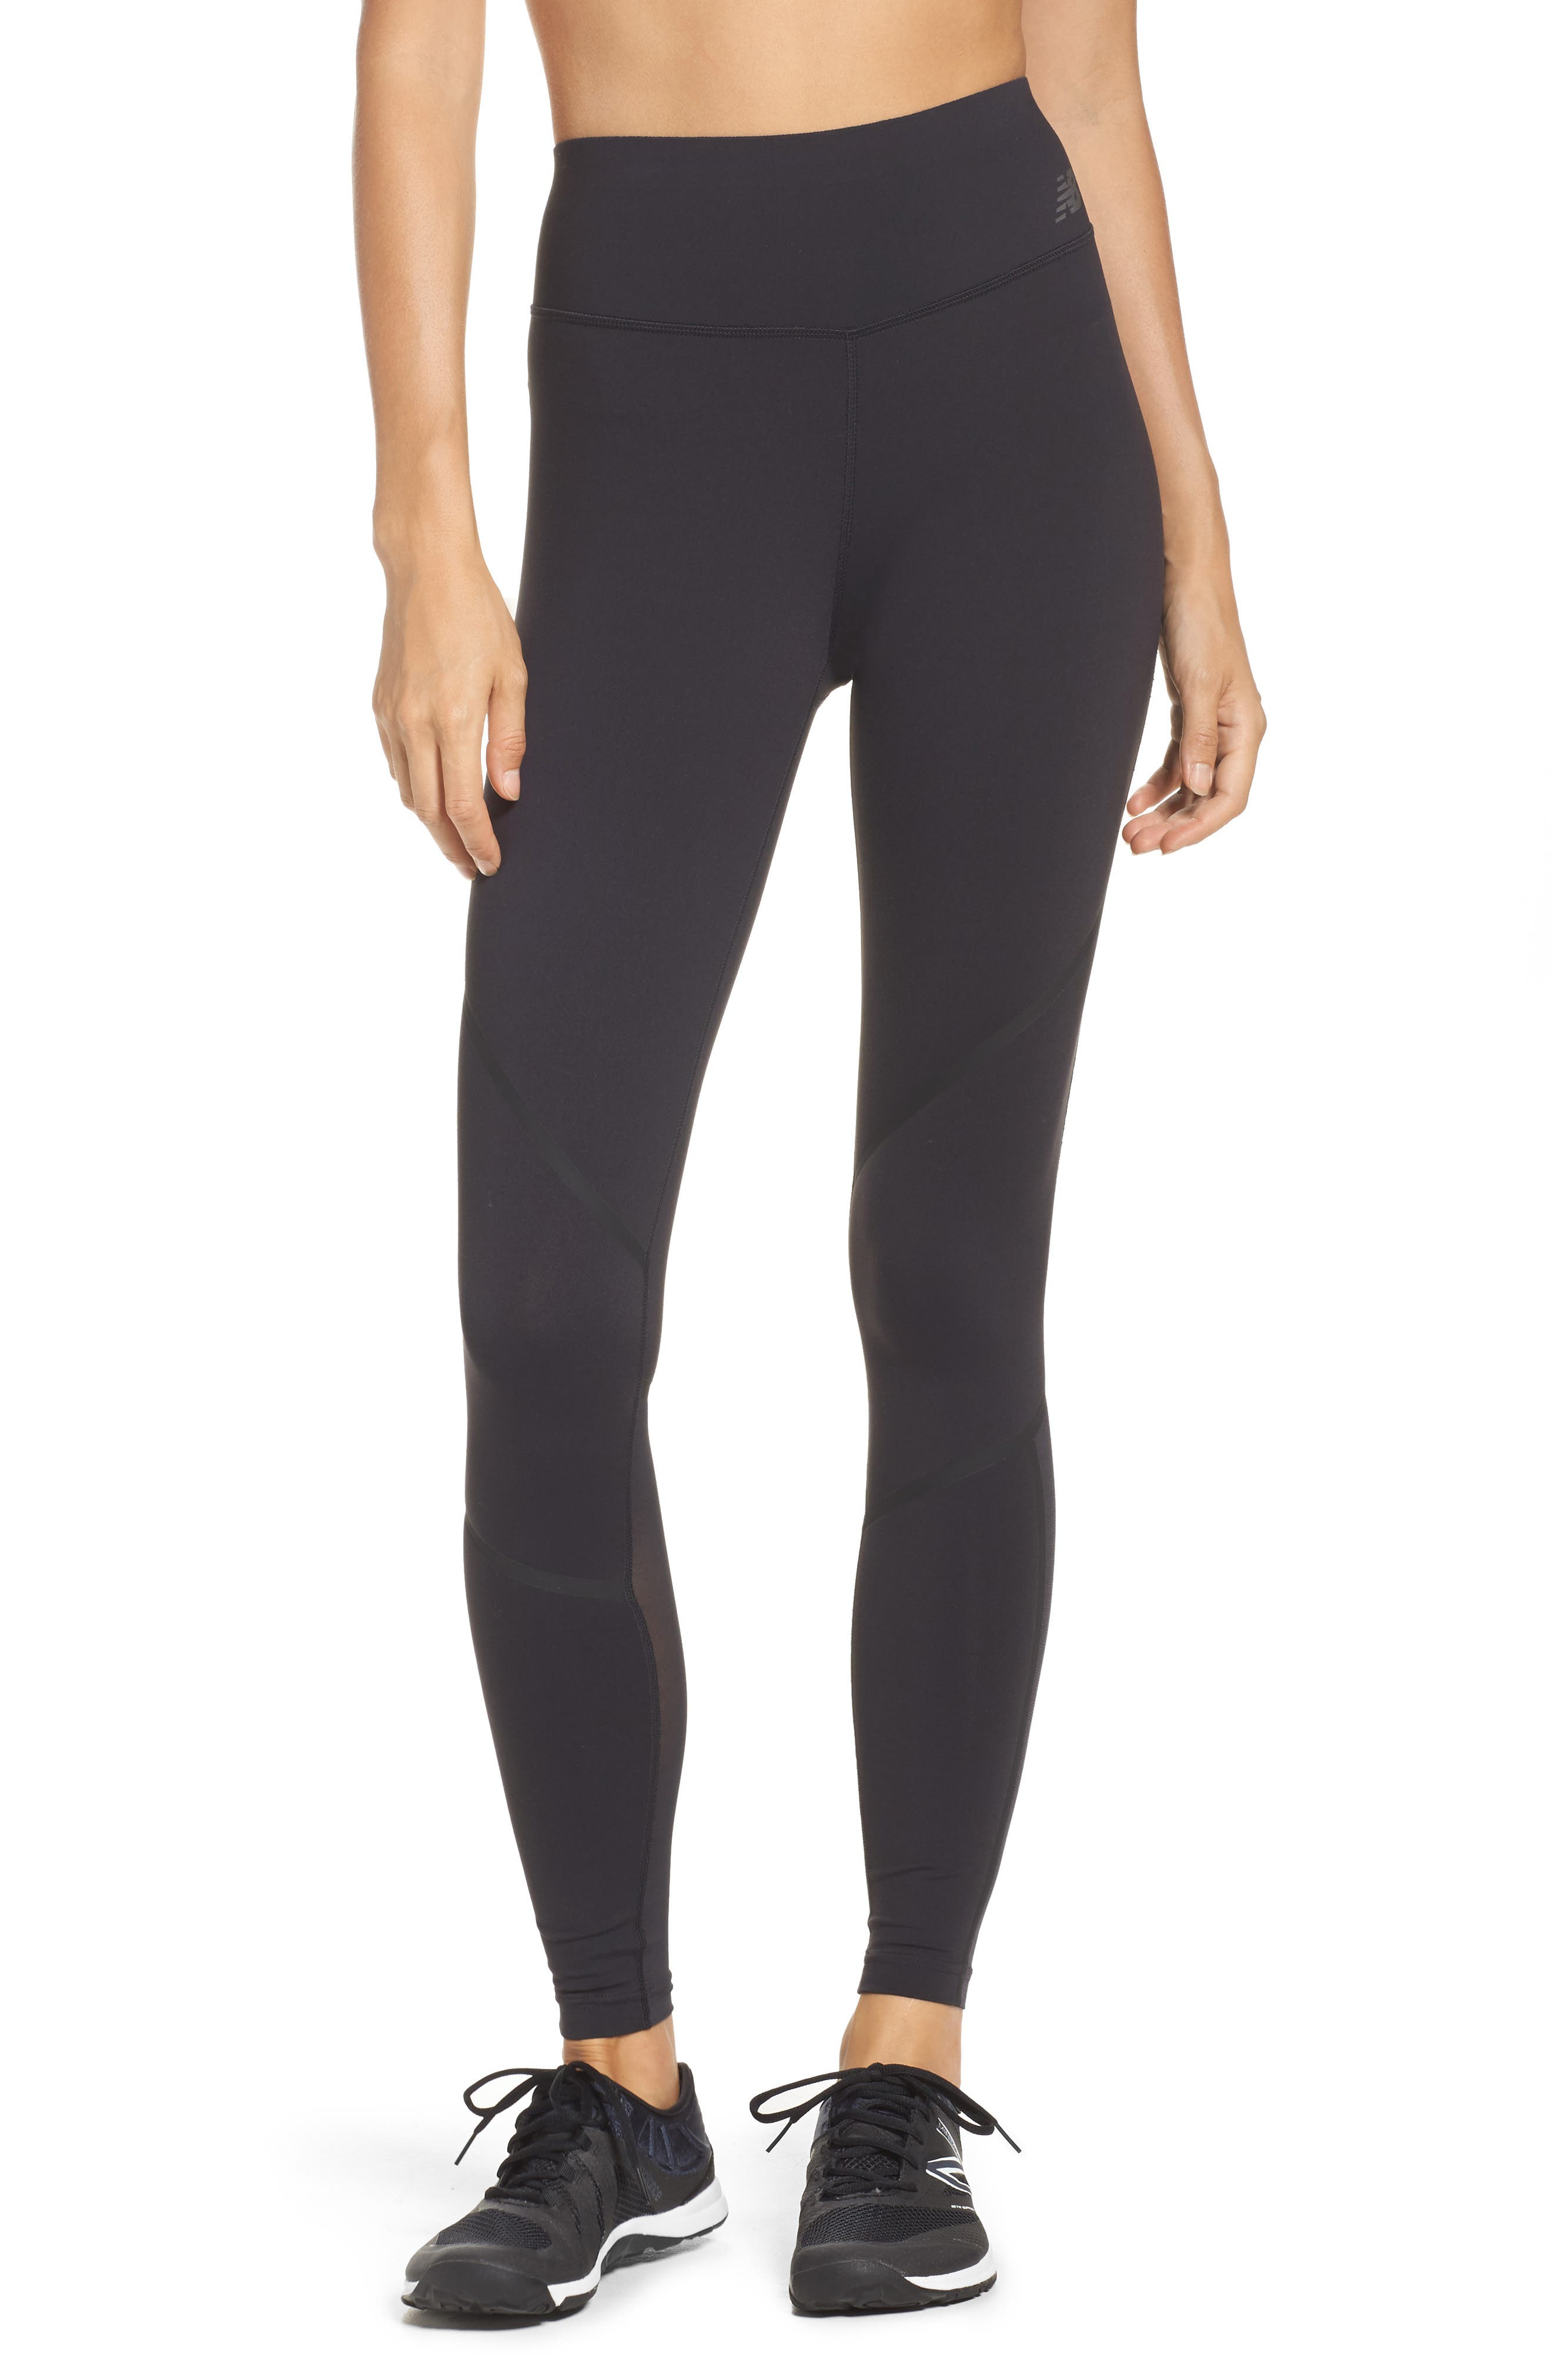 Intensity Tights,                         Main,                         color, 001